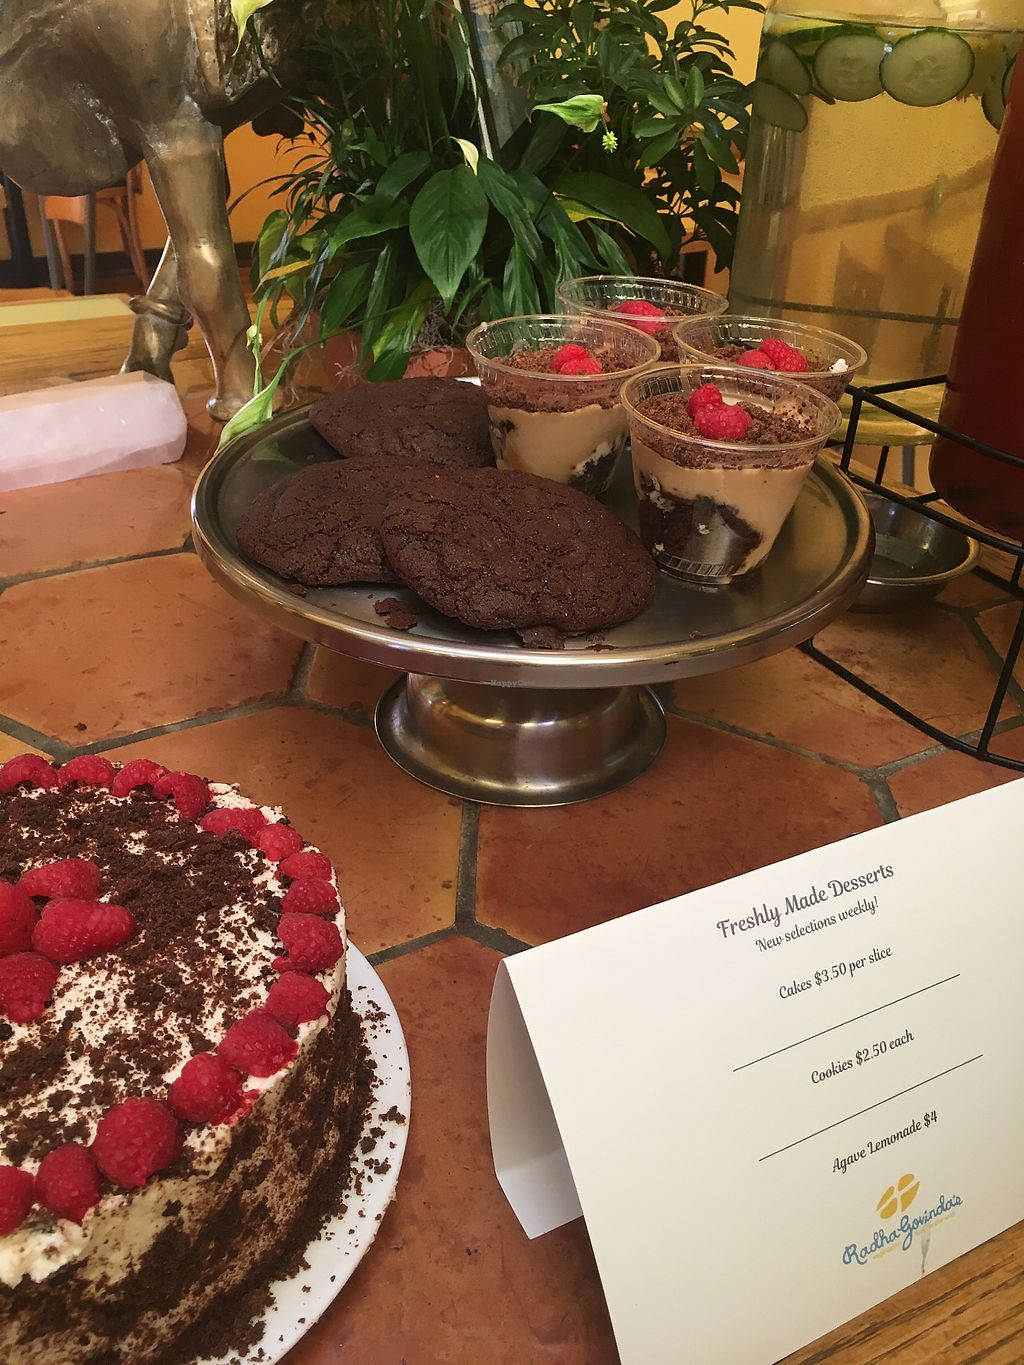 """Photo of Radha Govinda's Buffet  by <a href=""""/members/profile/LengleJungle"""">LengleJungle</a> <br/>more gluten free desserts  <br/> July 17, 2017  - <a href='/contact/abuse/image/93526/281521'>Report</a>"""